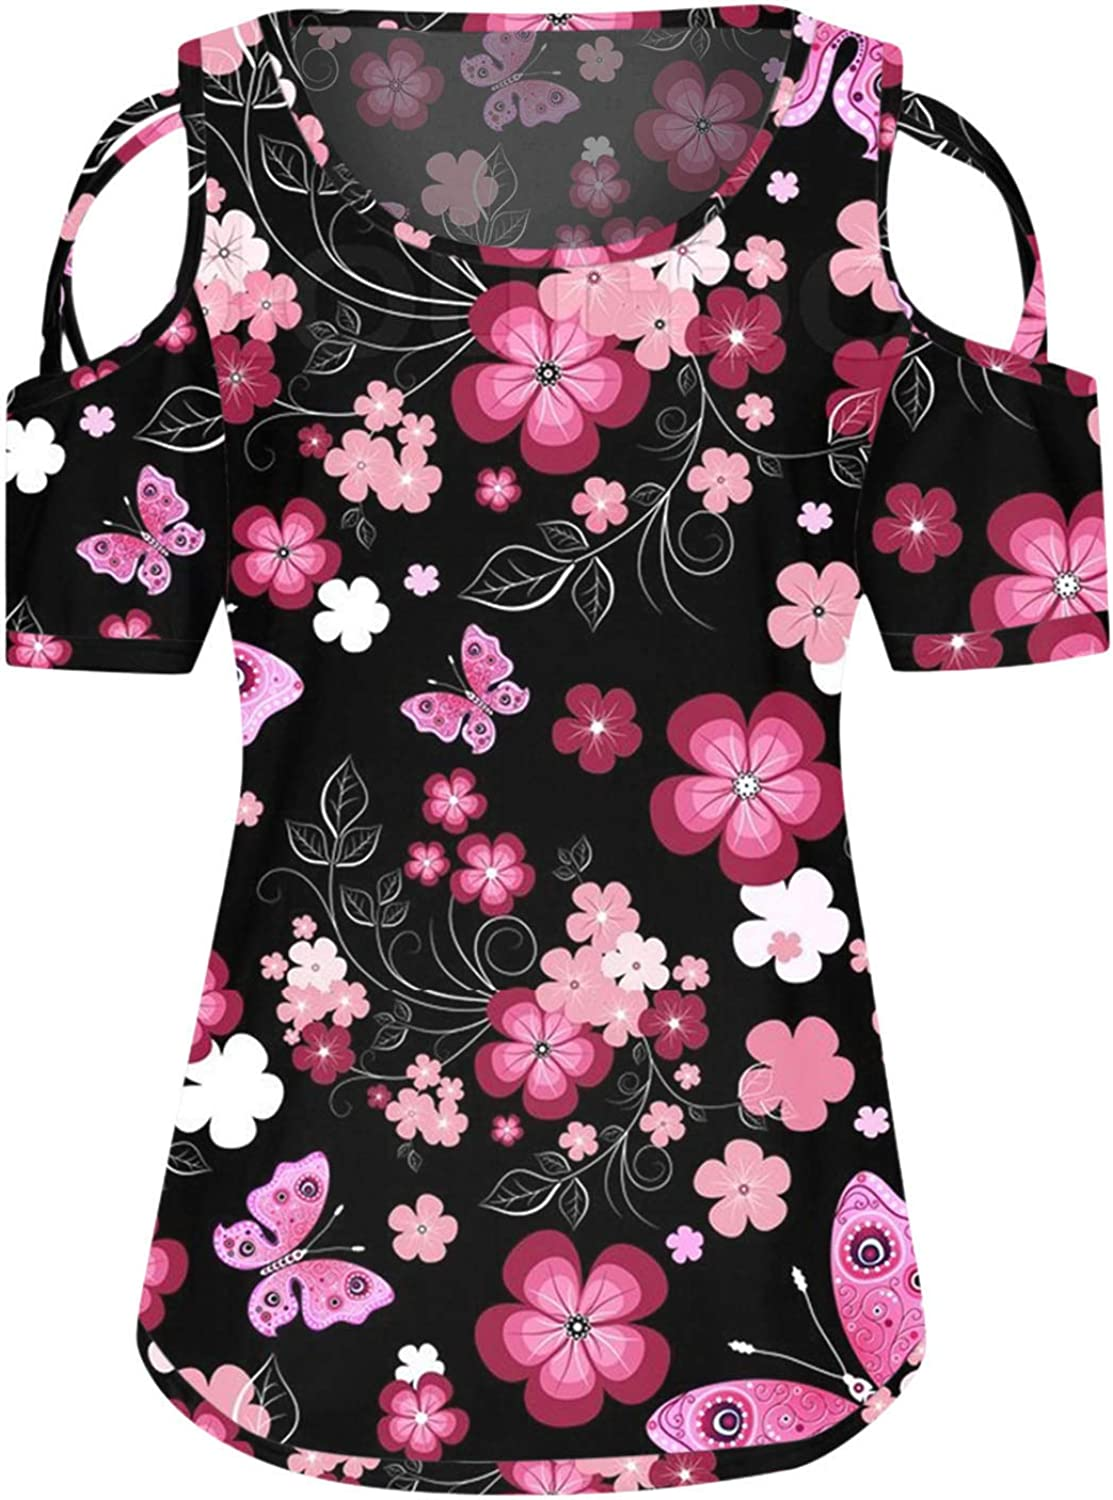 Women's Cold Shoulder Tops Plus Size Summer Tunic Blouses Floral Short Sleeve Cut Out Shirts Casual Comfy Tees